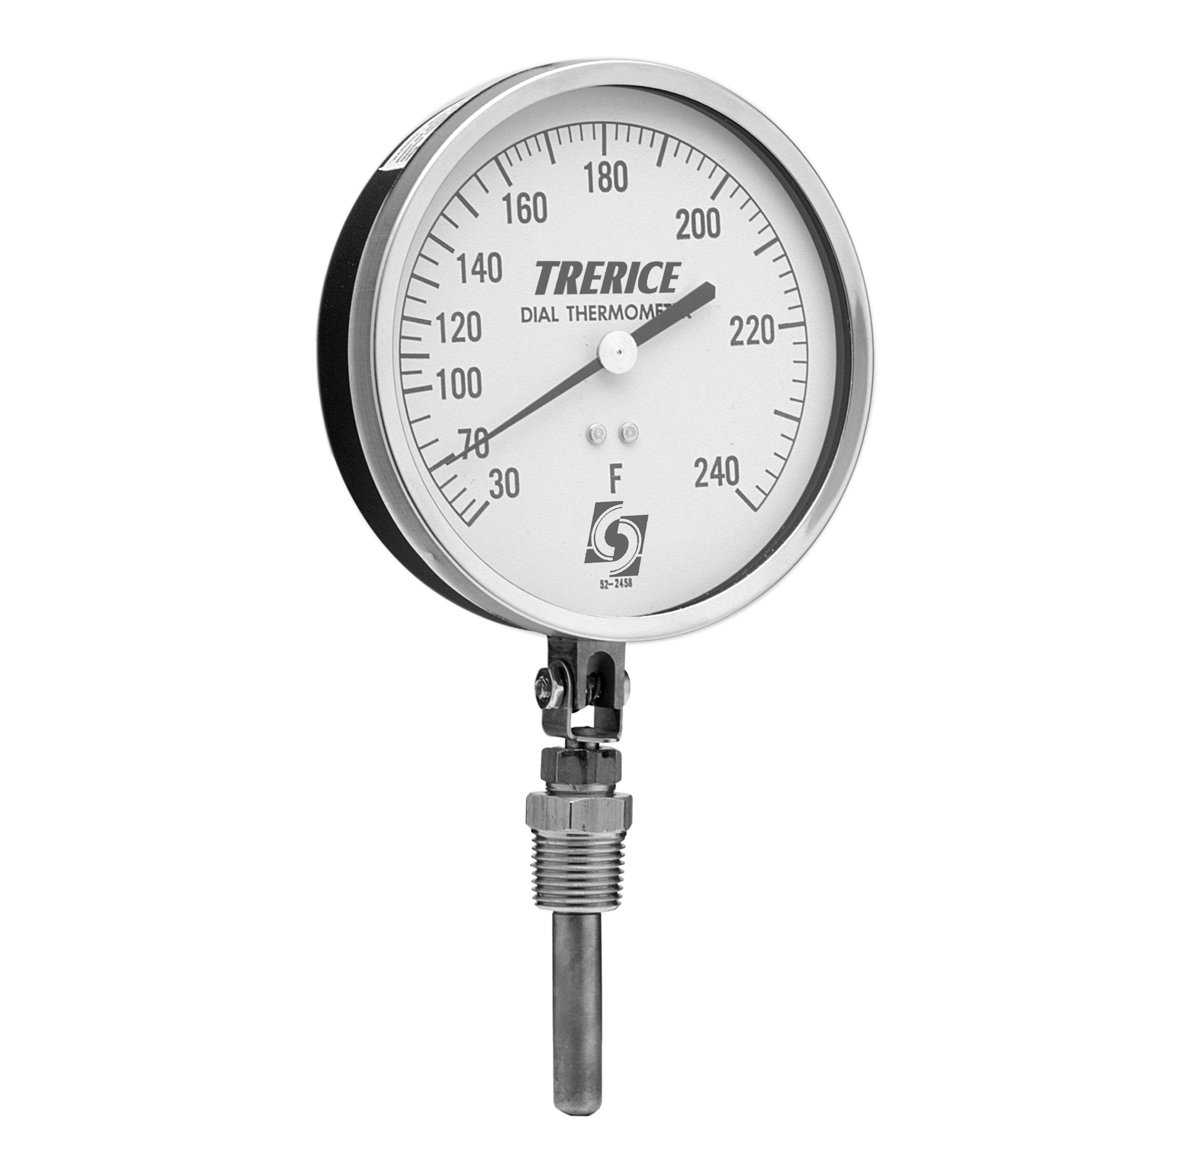 Trerice V80445110B31 Direct Mounted Dial Thermometer, Vapor Actuated, 4.5'' aluminum adjustable angle case, 30-240˚F, 2'' copper bulb by Trerice